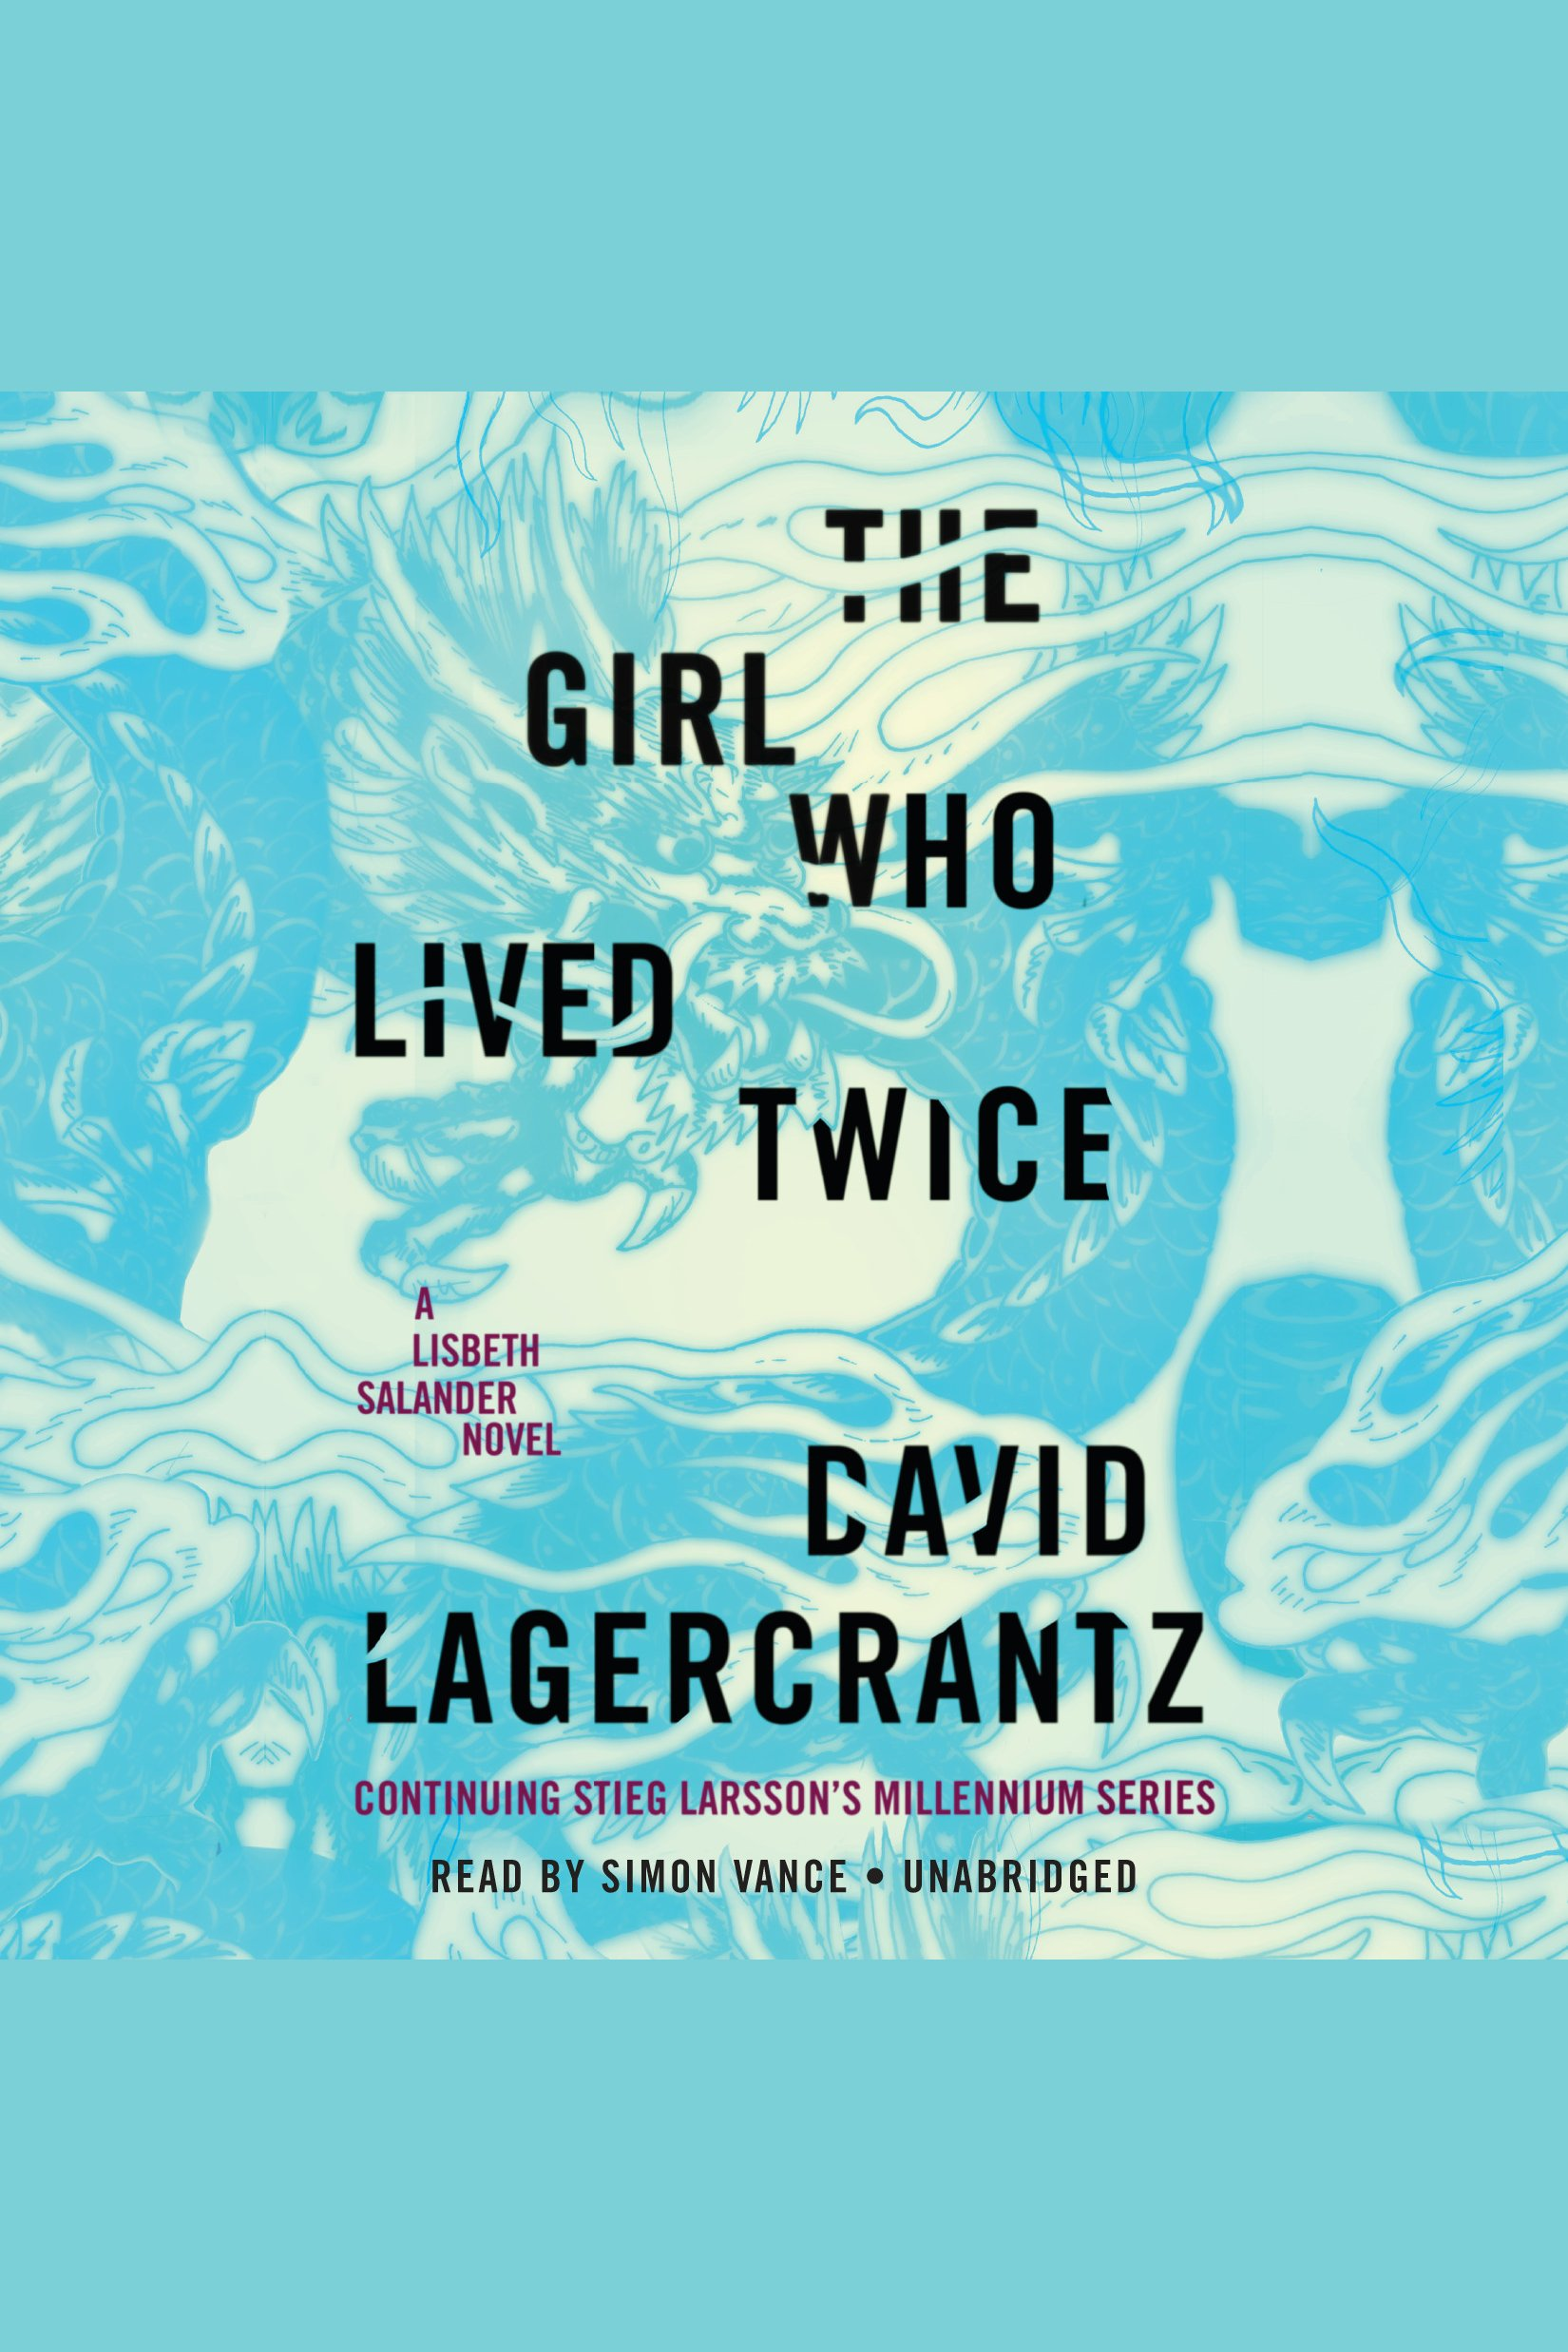 The Girl Who Lived Twice A Lisbeth Salander Novel